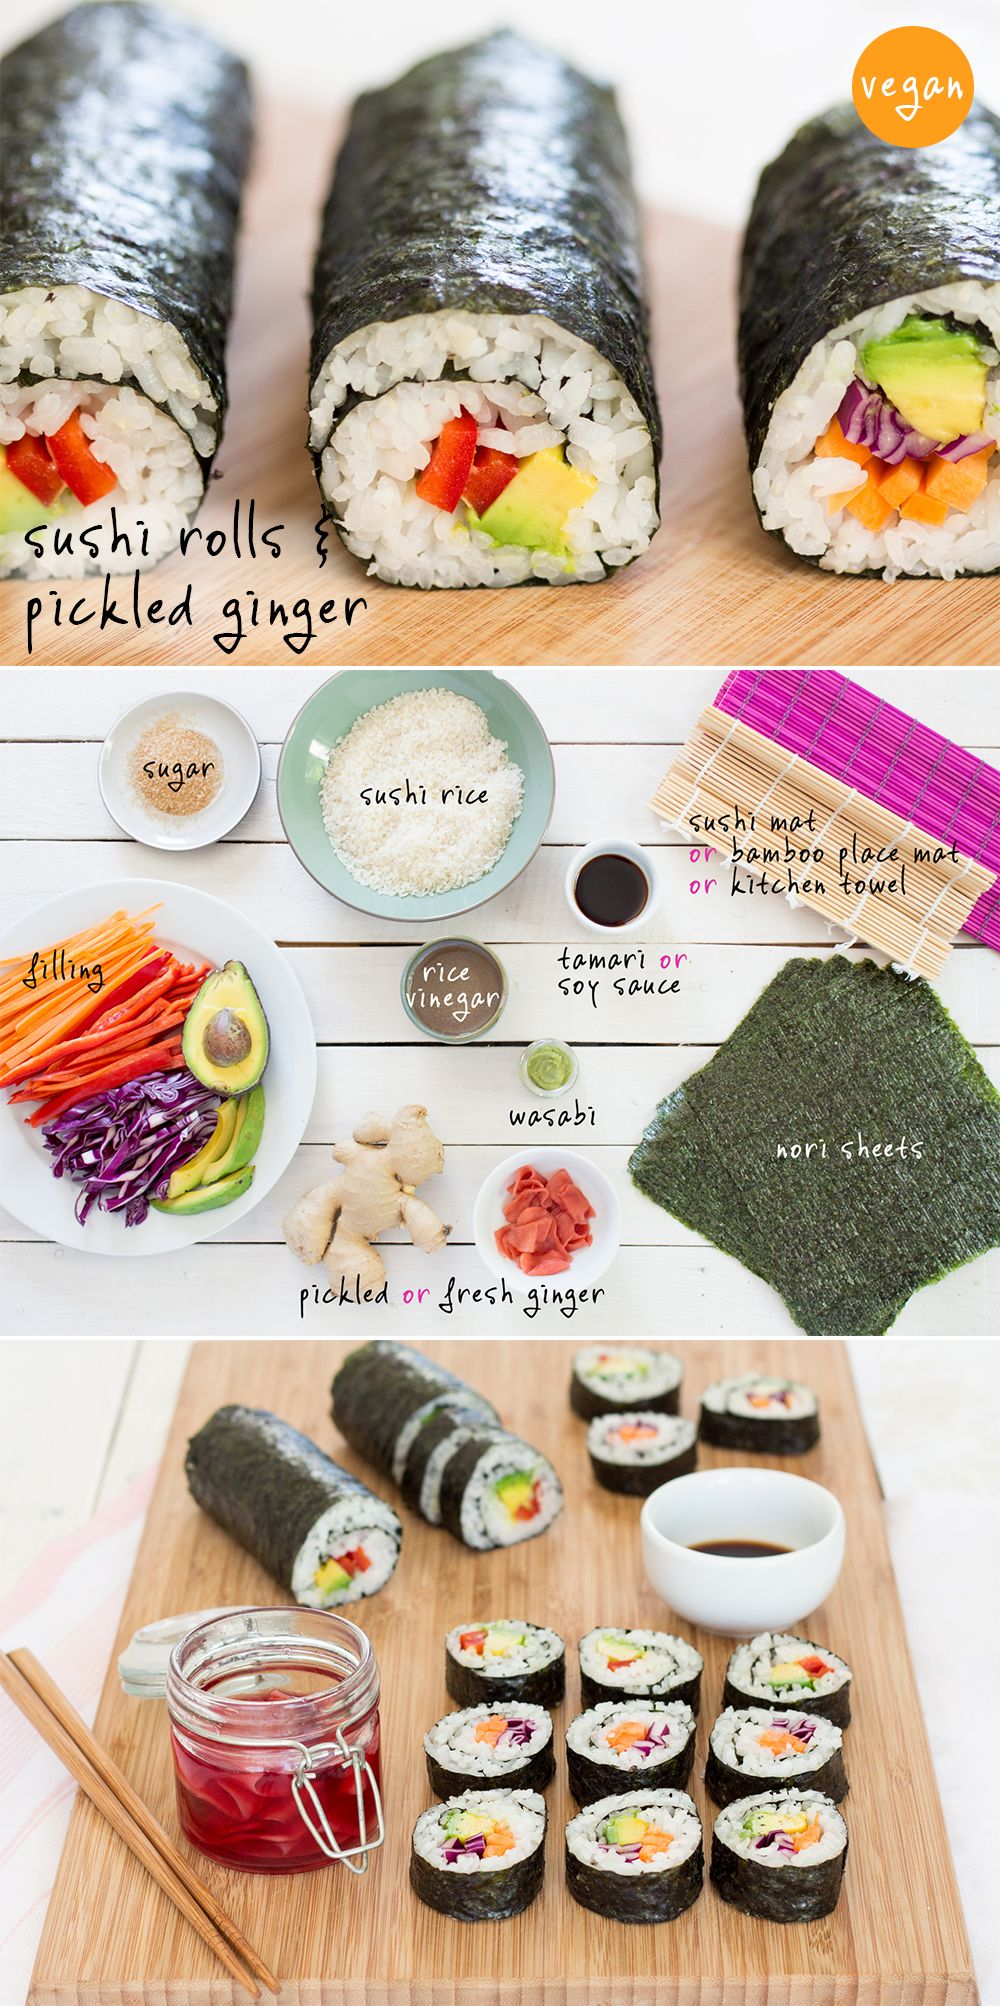 We show you how to make simple #sushi rolls and homemade #pickled #ginger. Step by step photos on the blog. #recipe #recipes #glutenfree #gluten-free #vegan